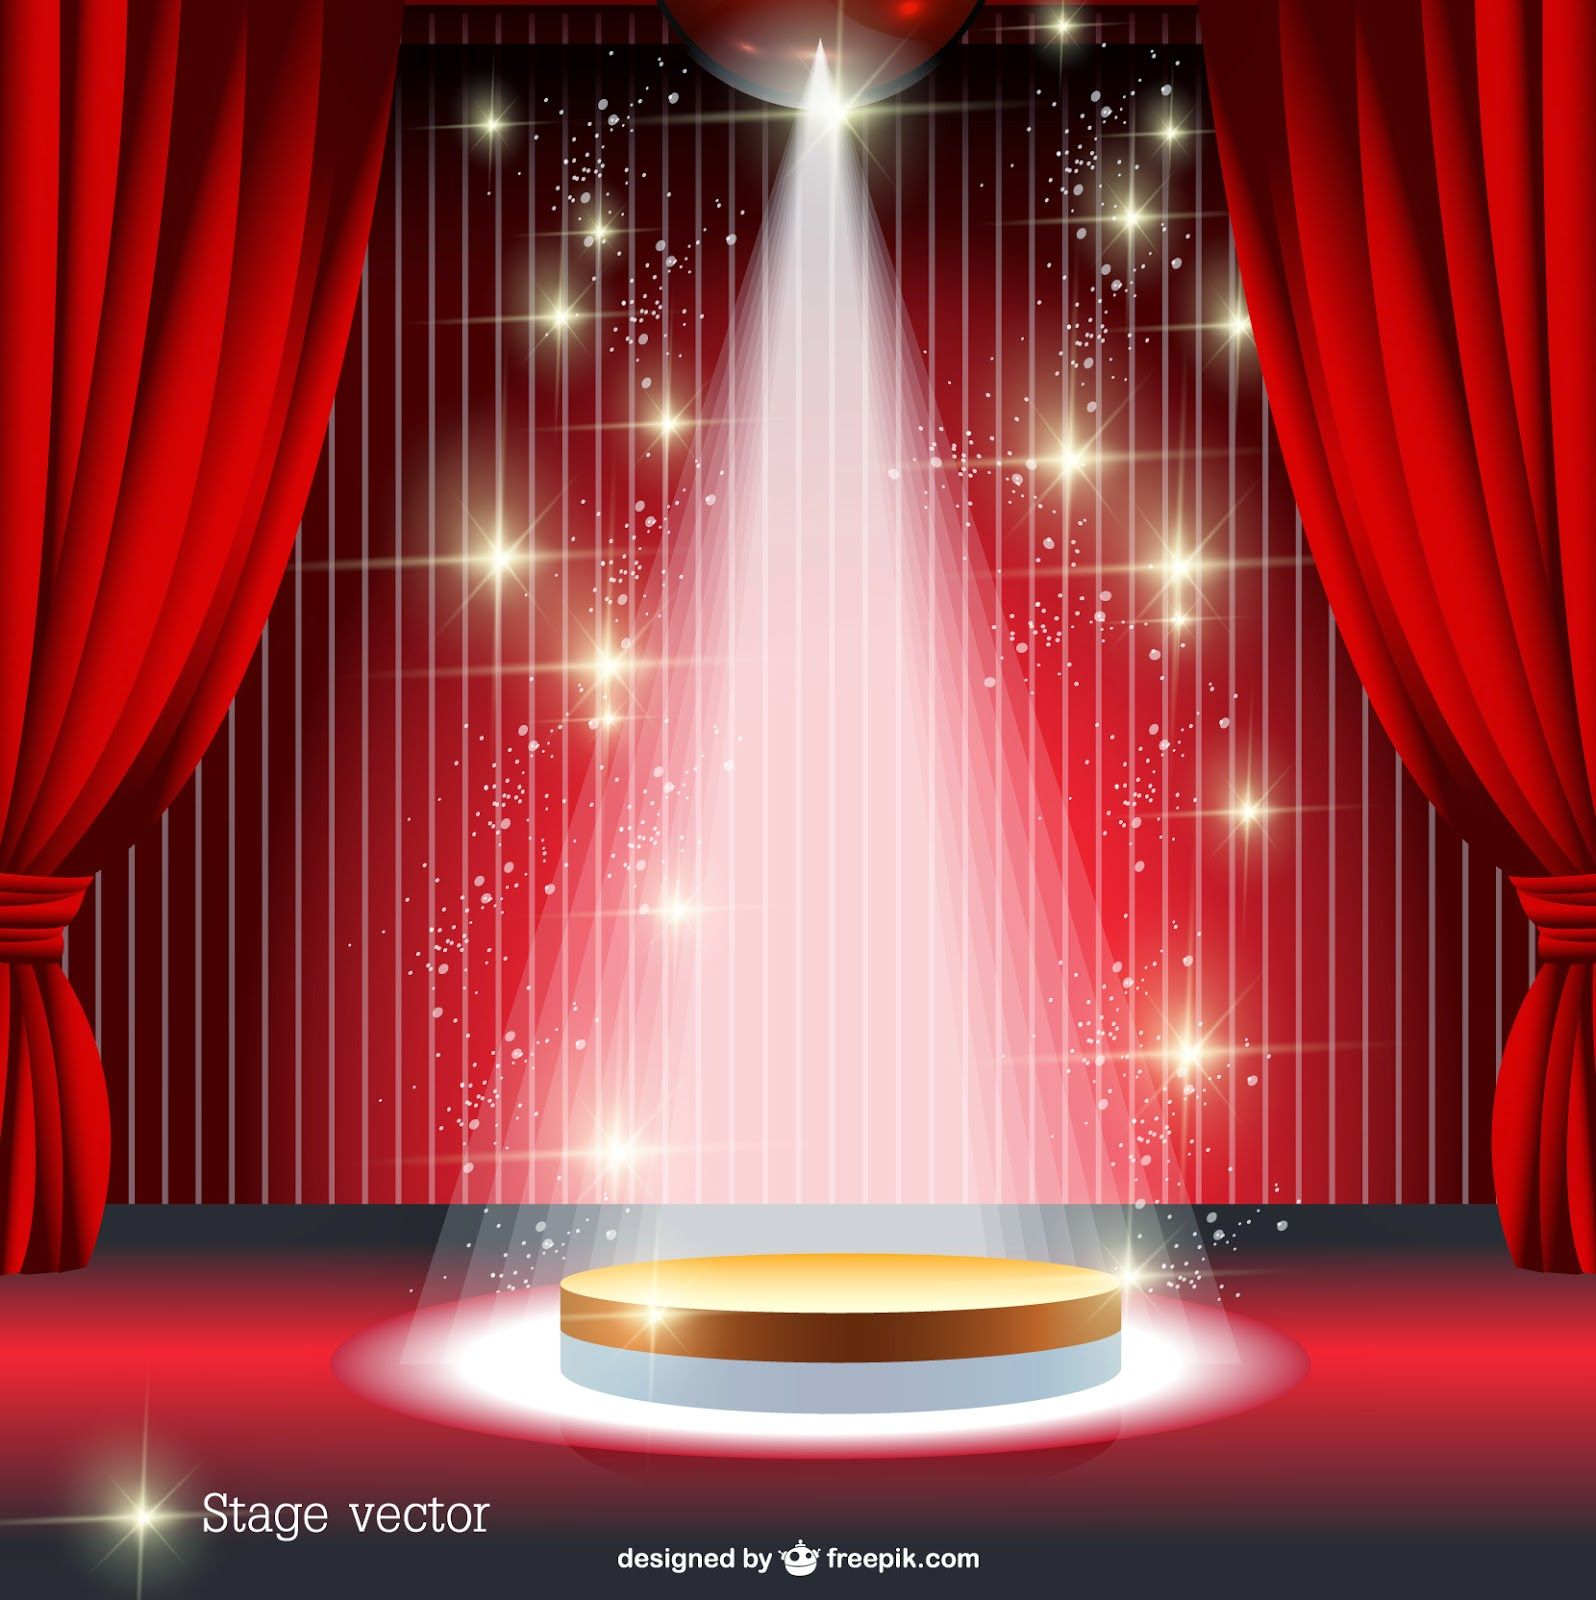 Stage curtains spotlight - Cortina Vermelha Spotlight Vetor Stage Curtainsred